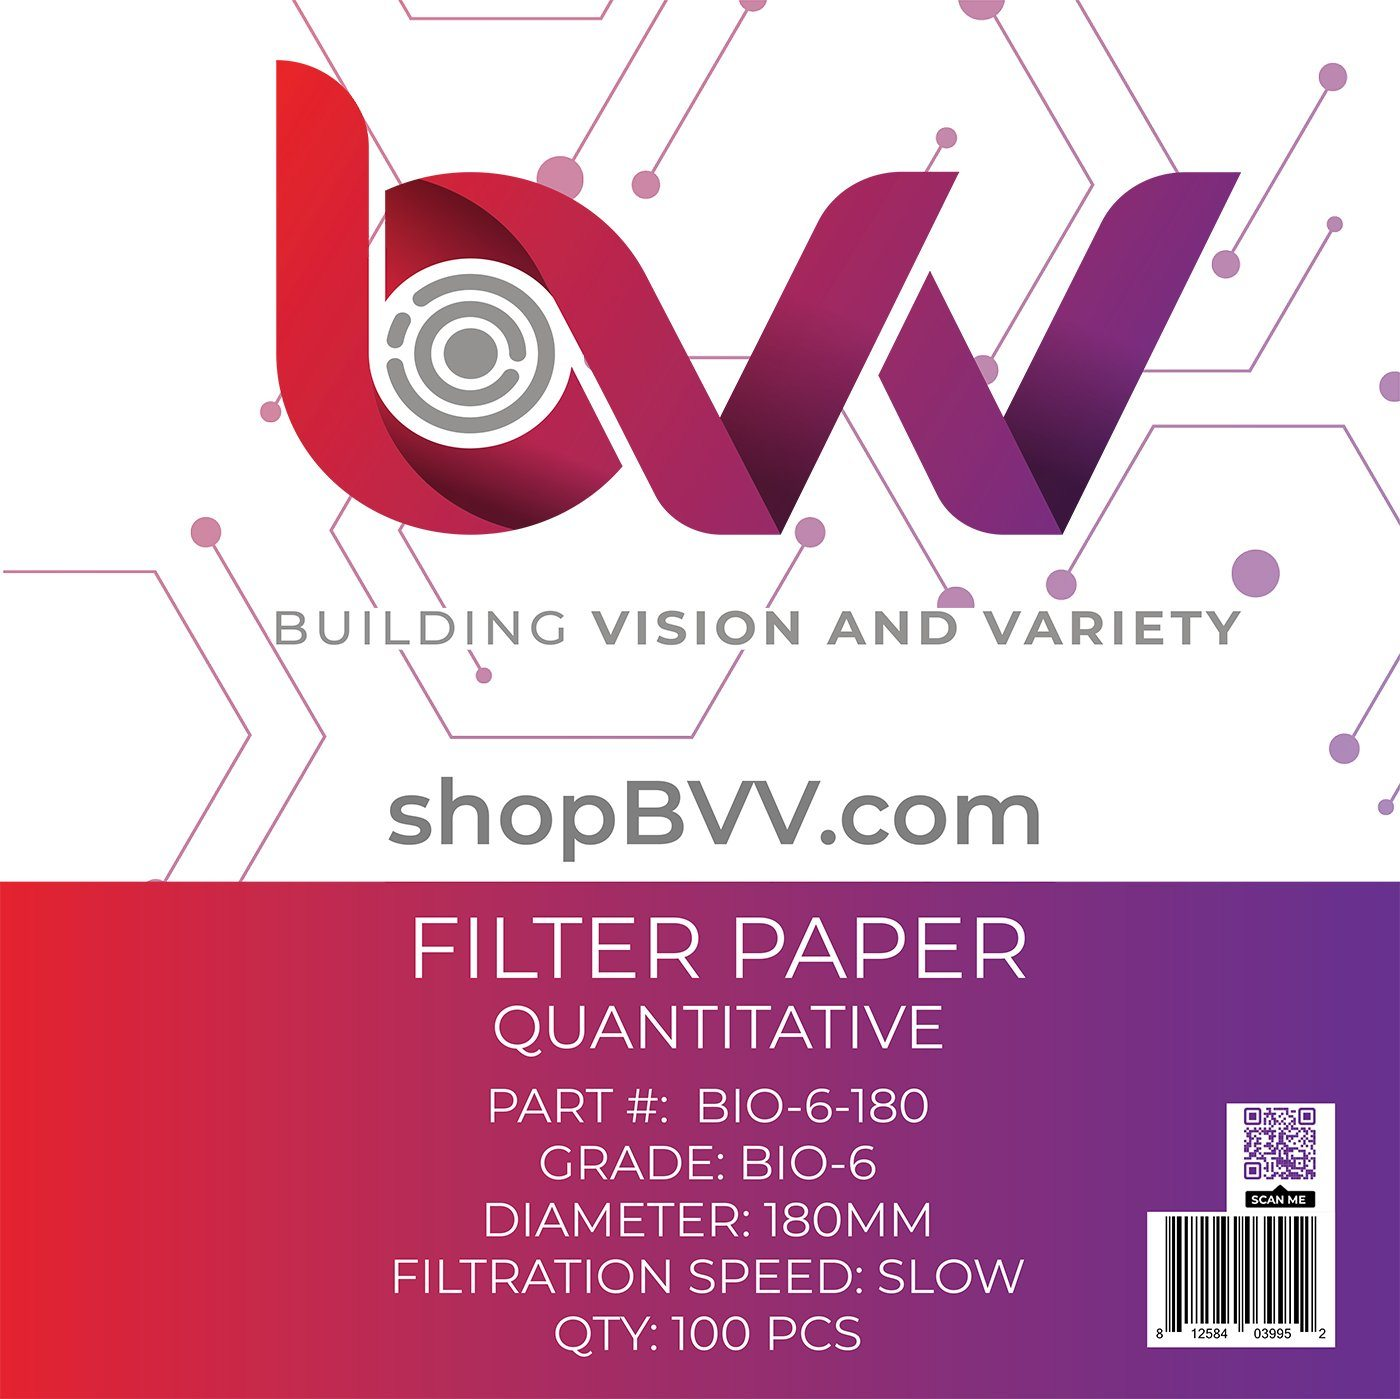 Ashless Filter Papers - 180MM - Qualitative